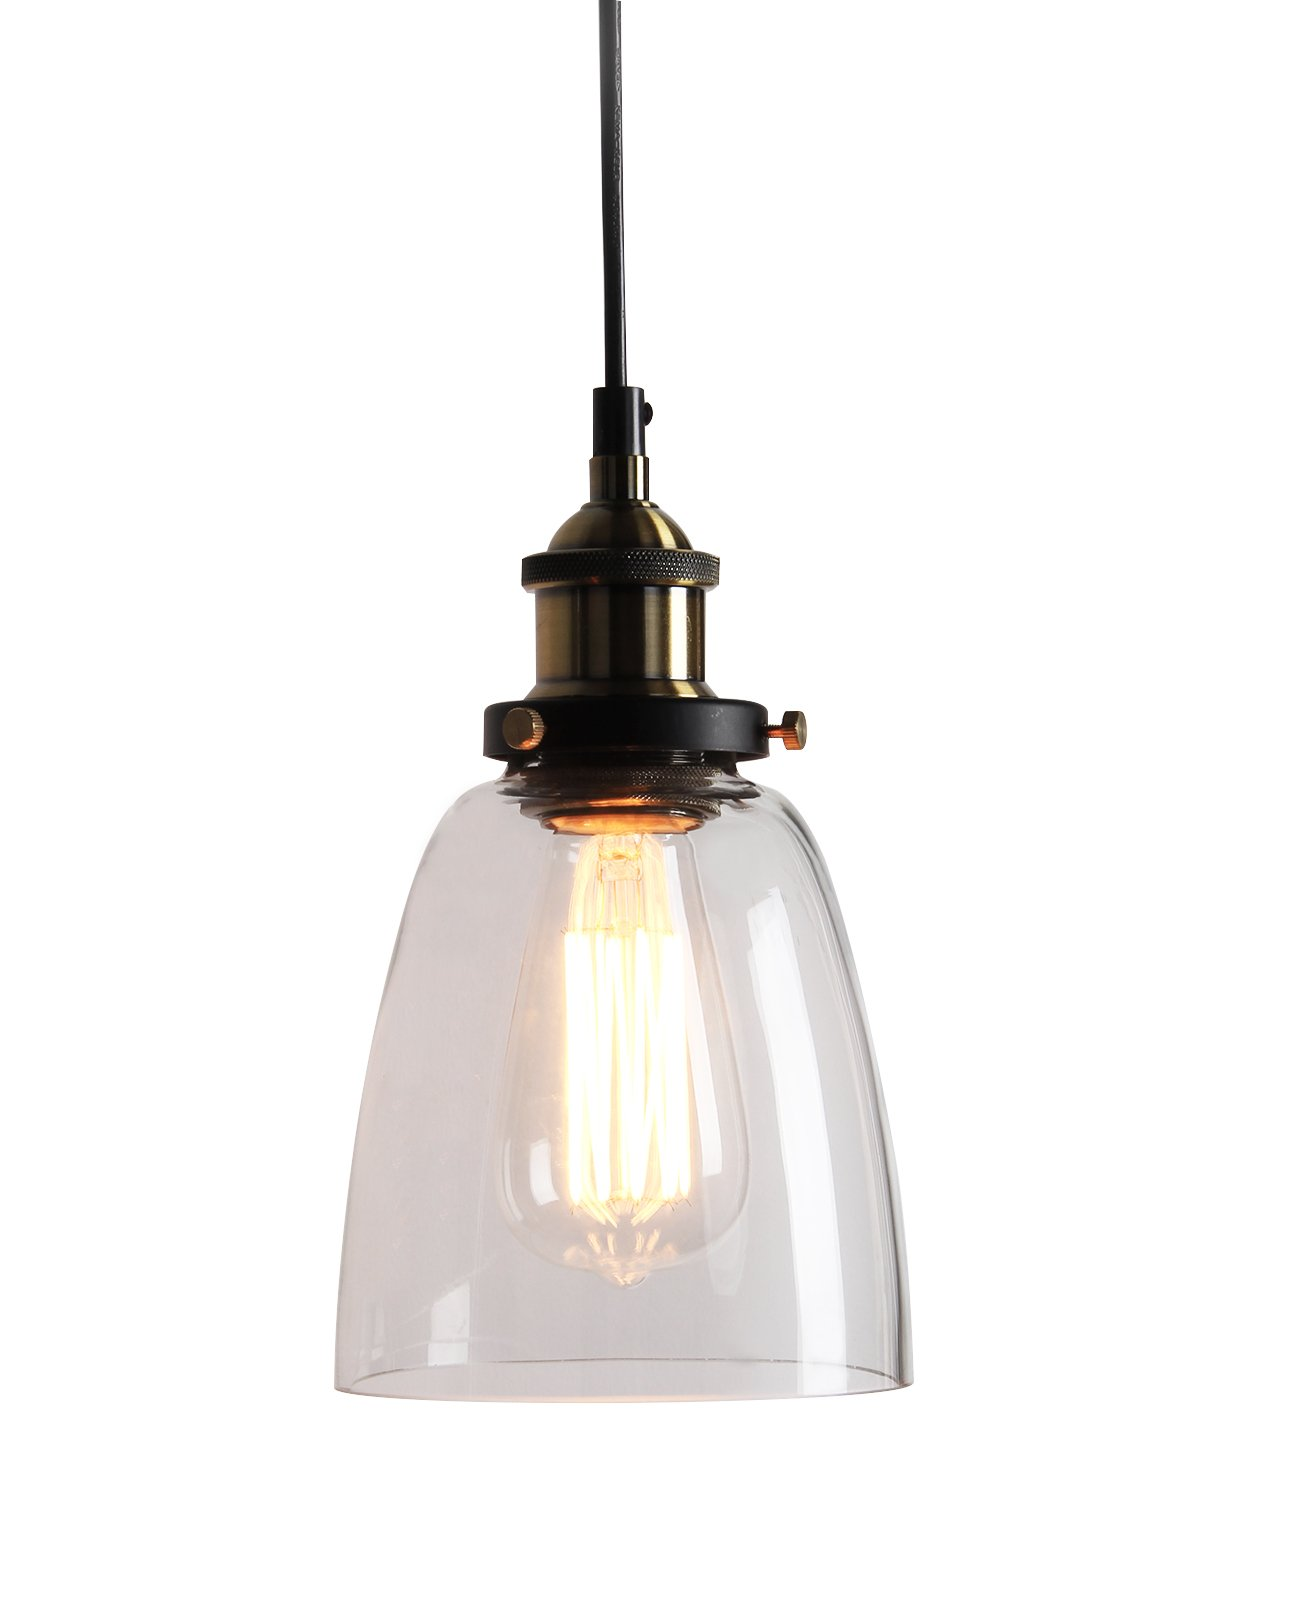 Modern Vintage Lights Buyee Modern Vintage Industrial Retro Pendant Edison Light